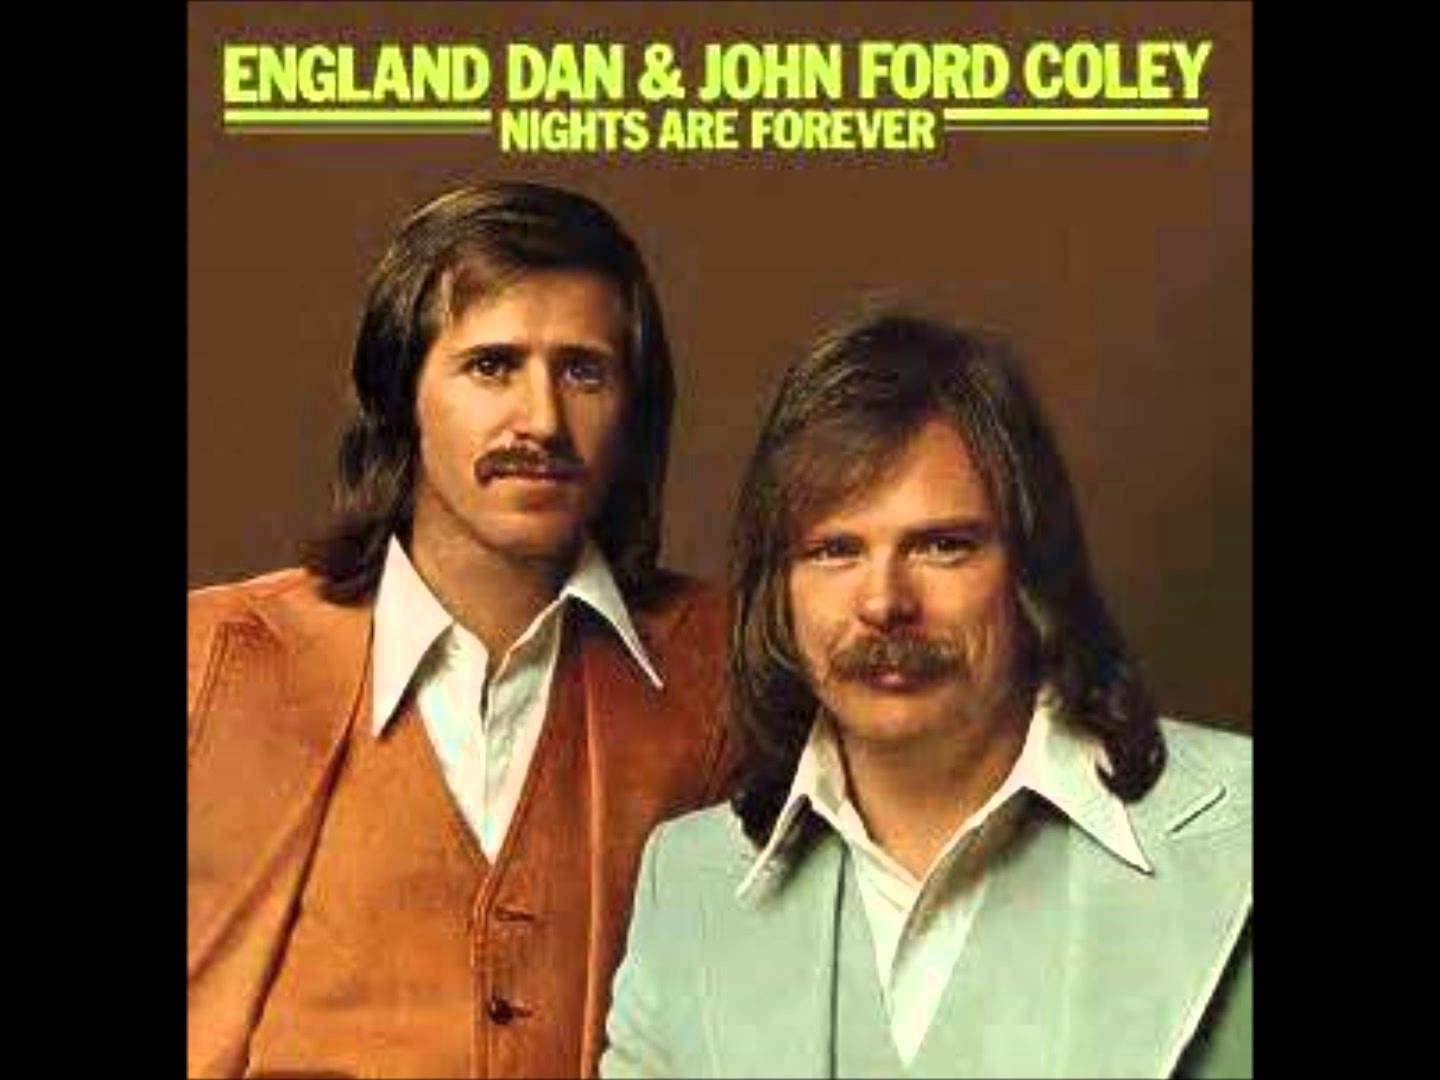 10 best england dan and john ford coley songs